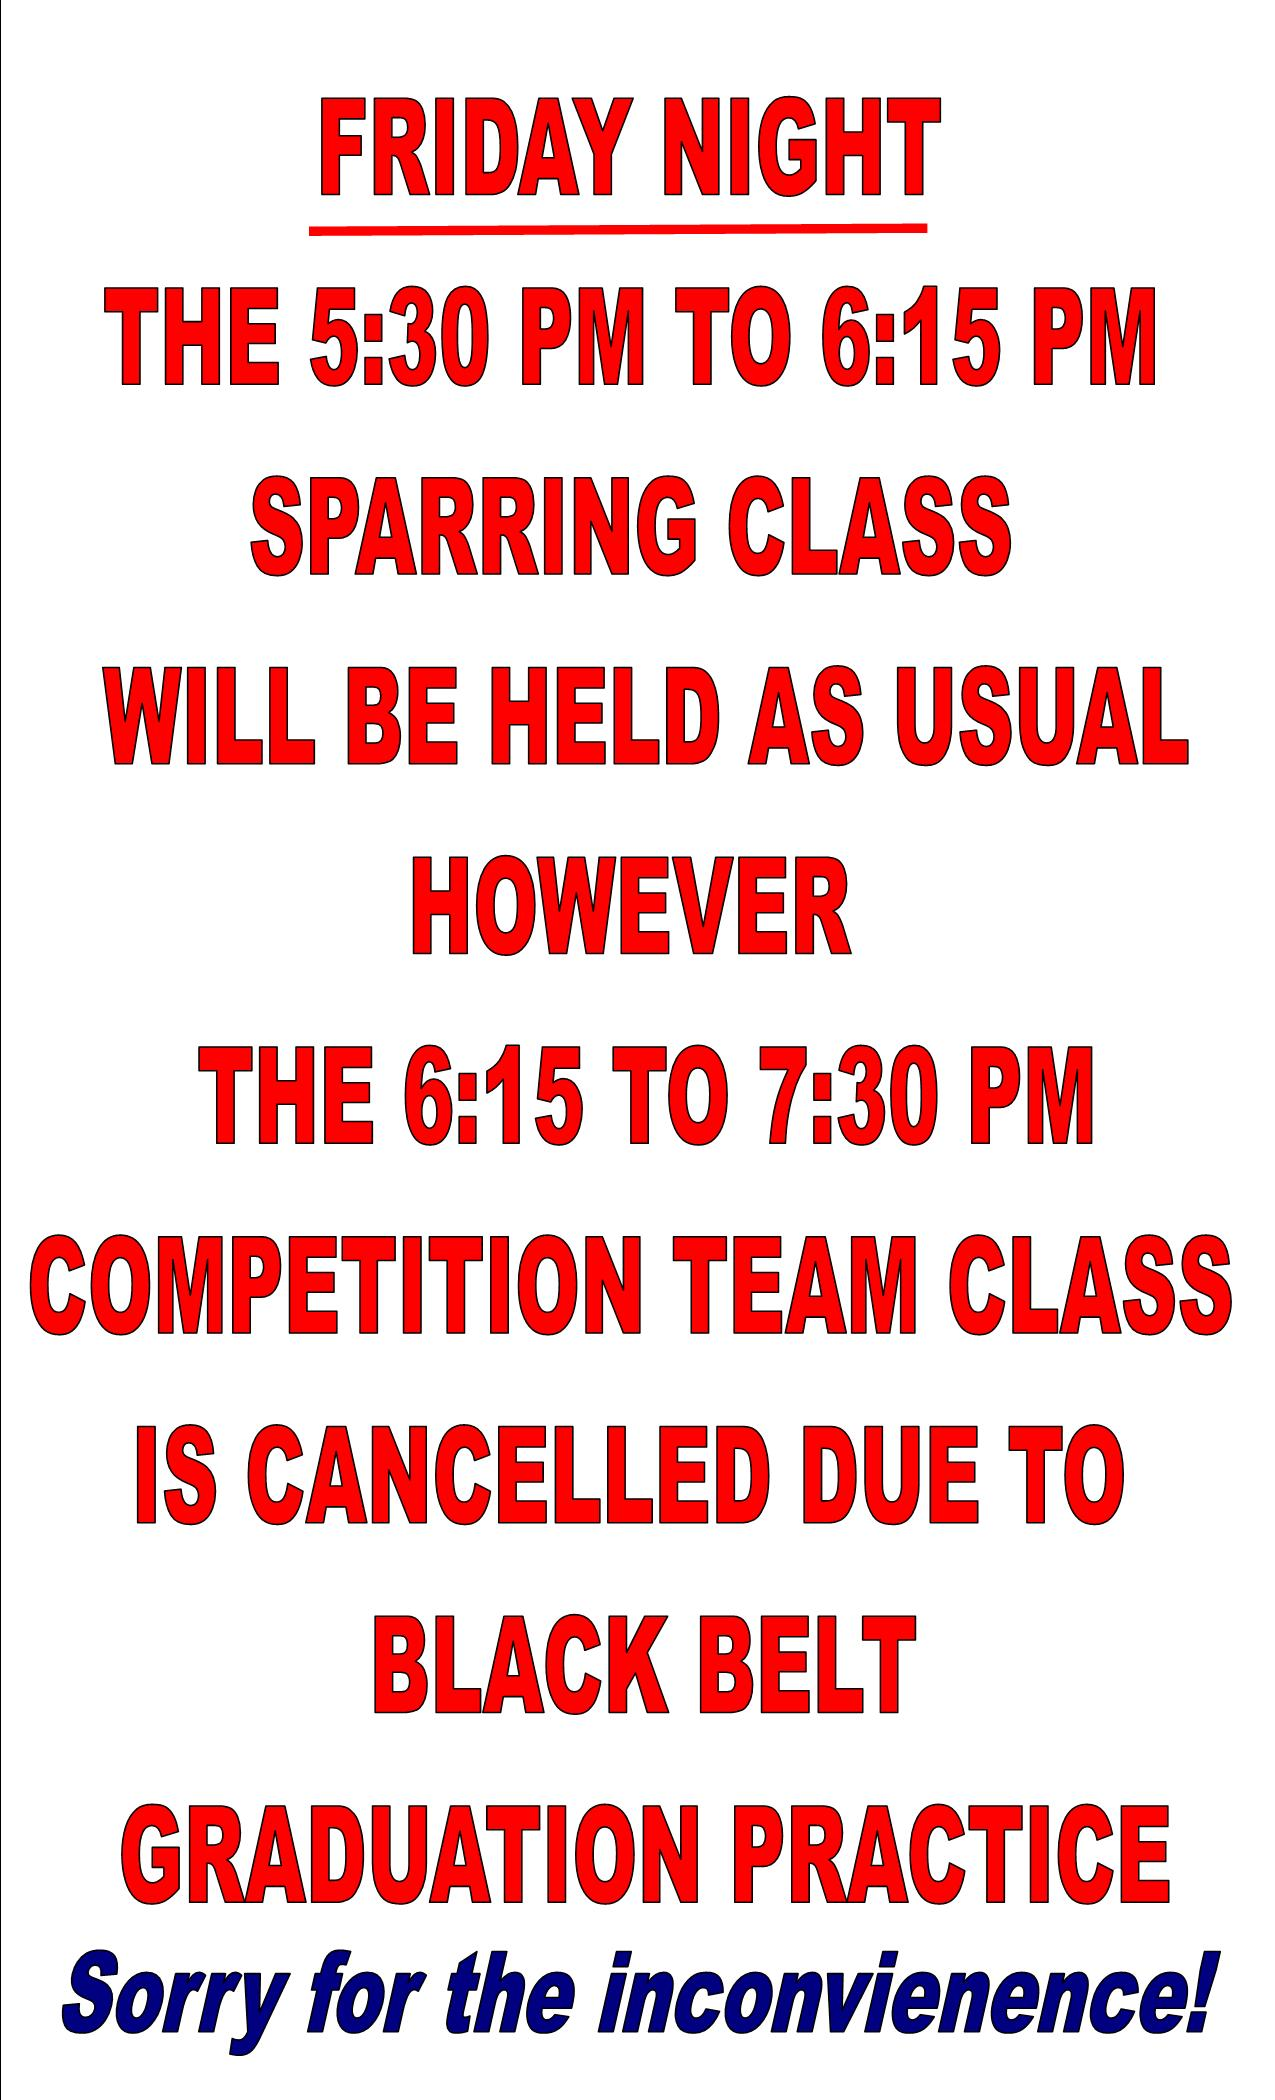 Comp team class cancelled for BB grad practice